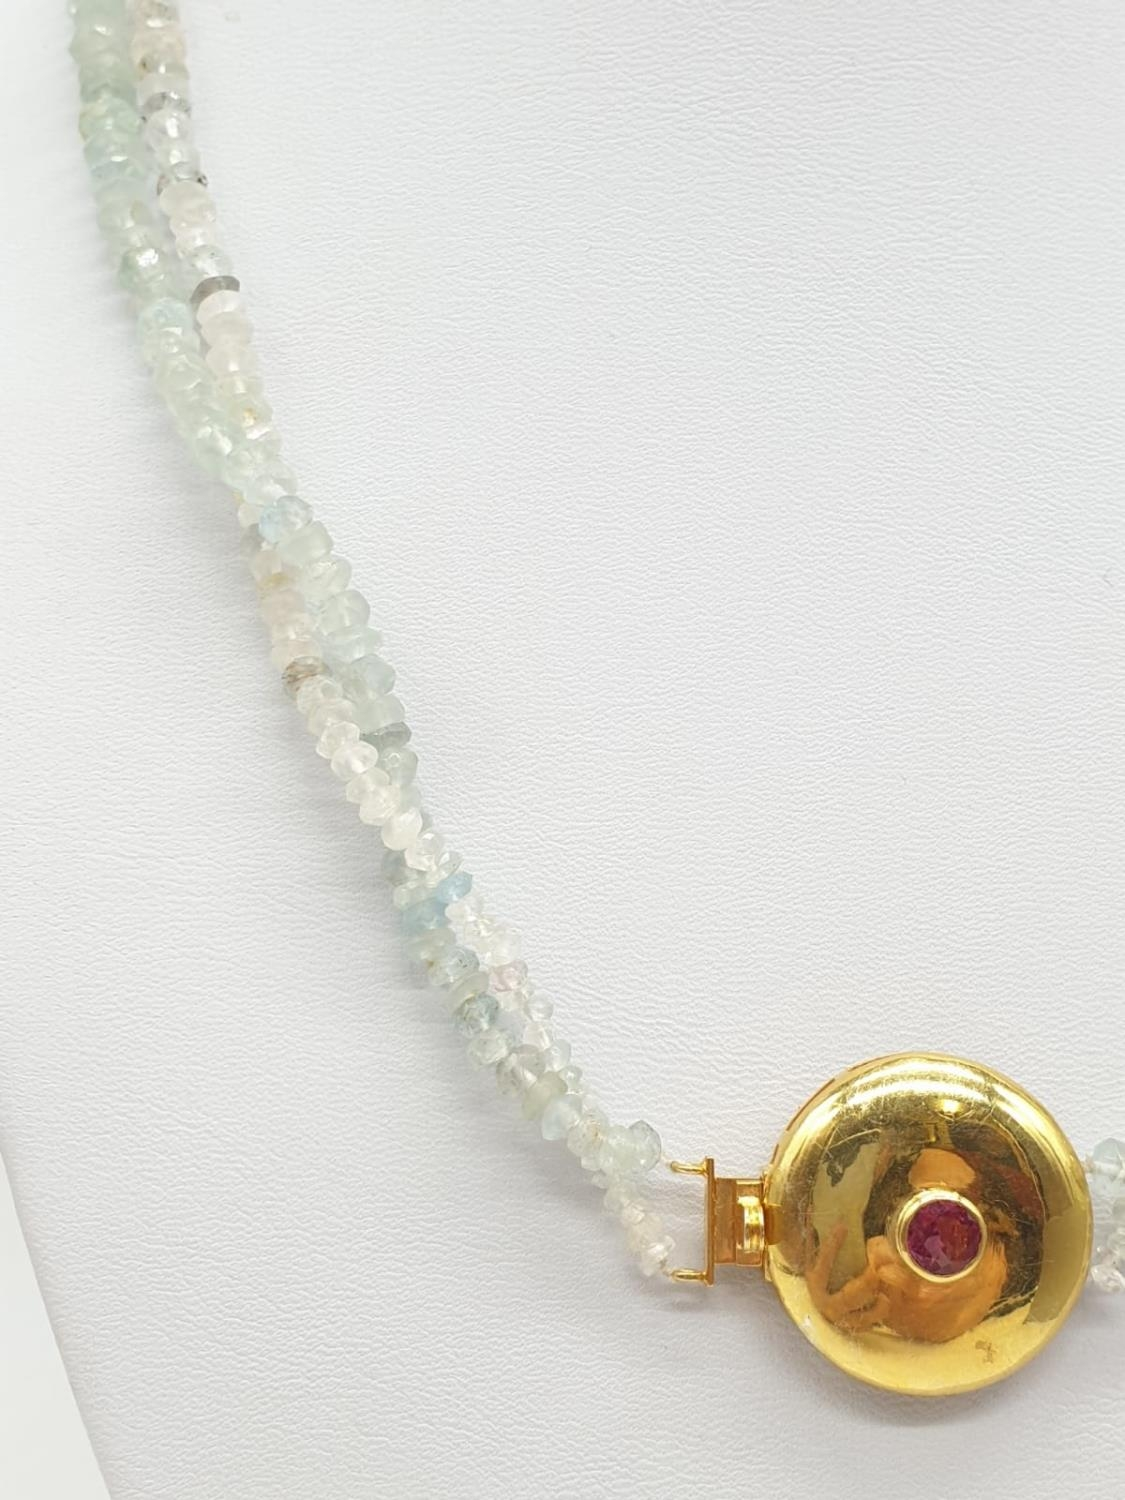 An aquamarine necklace with a gold plated silver clasp, tourmaline stone at the centre of clasp. - Image 4 of 5